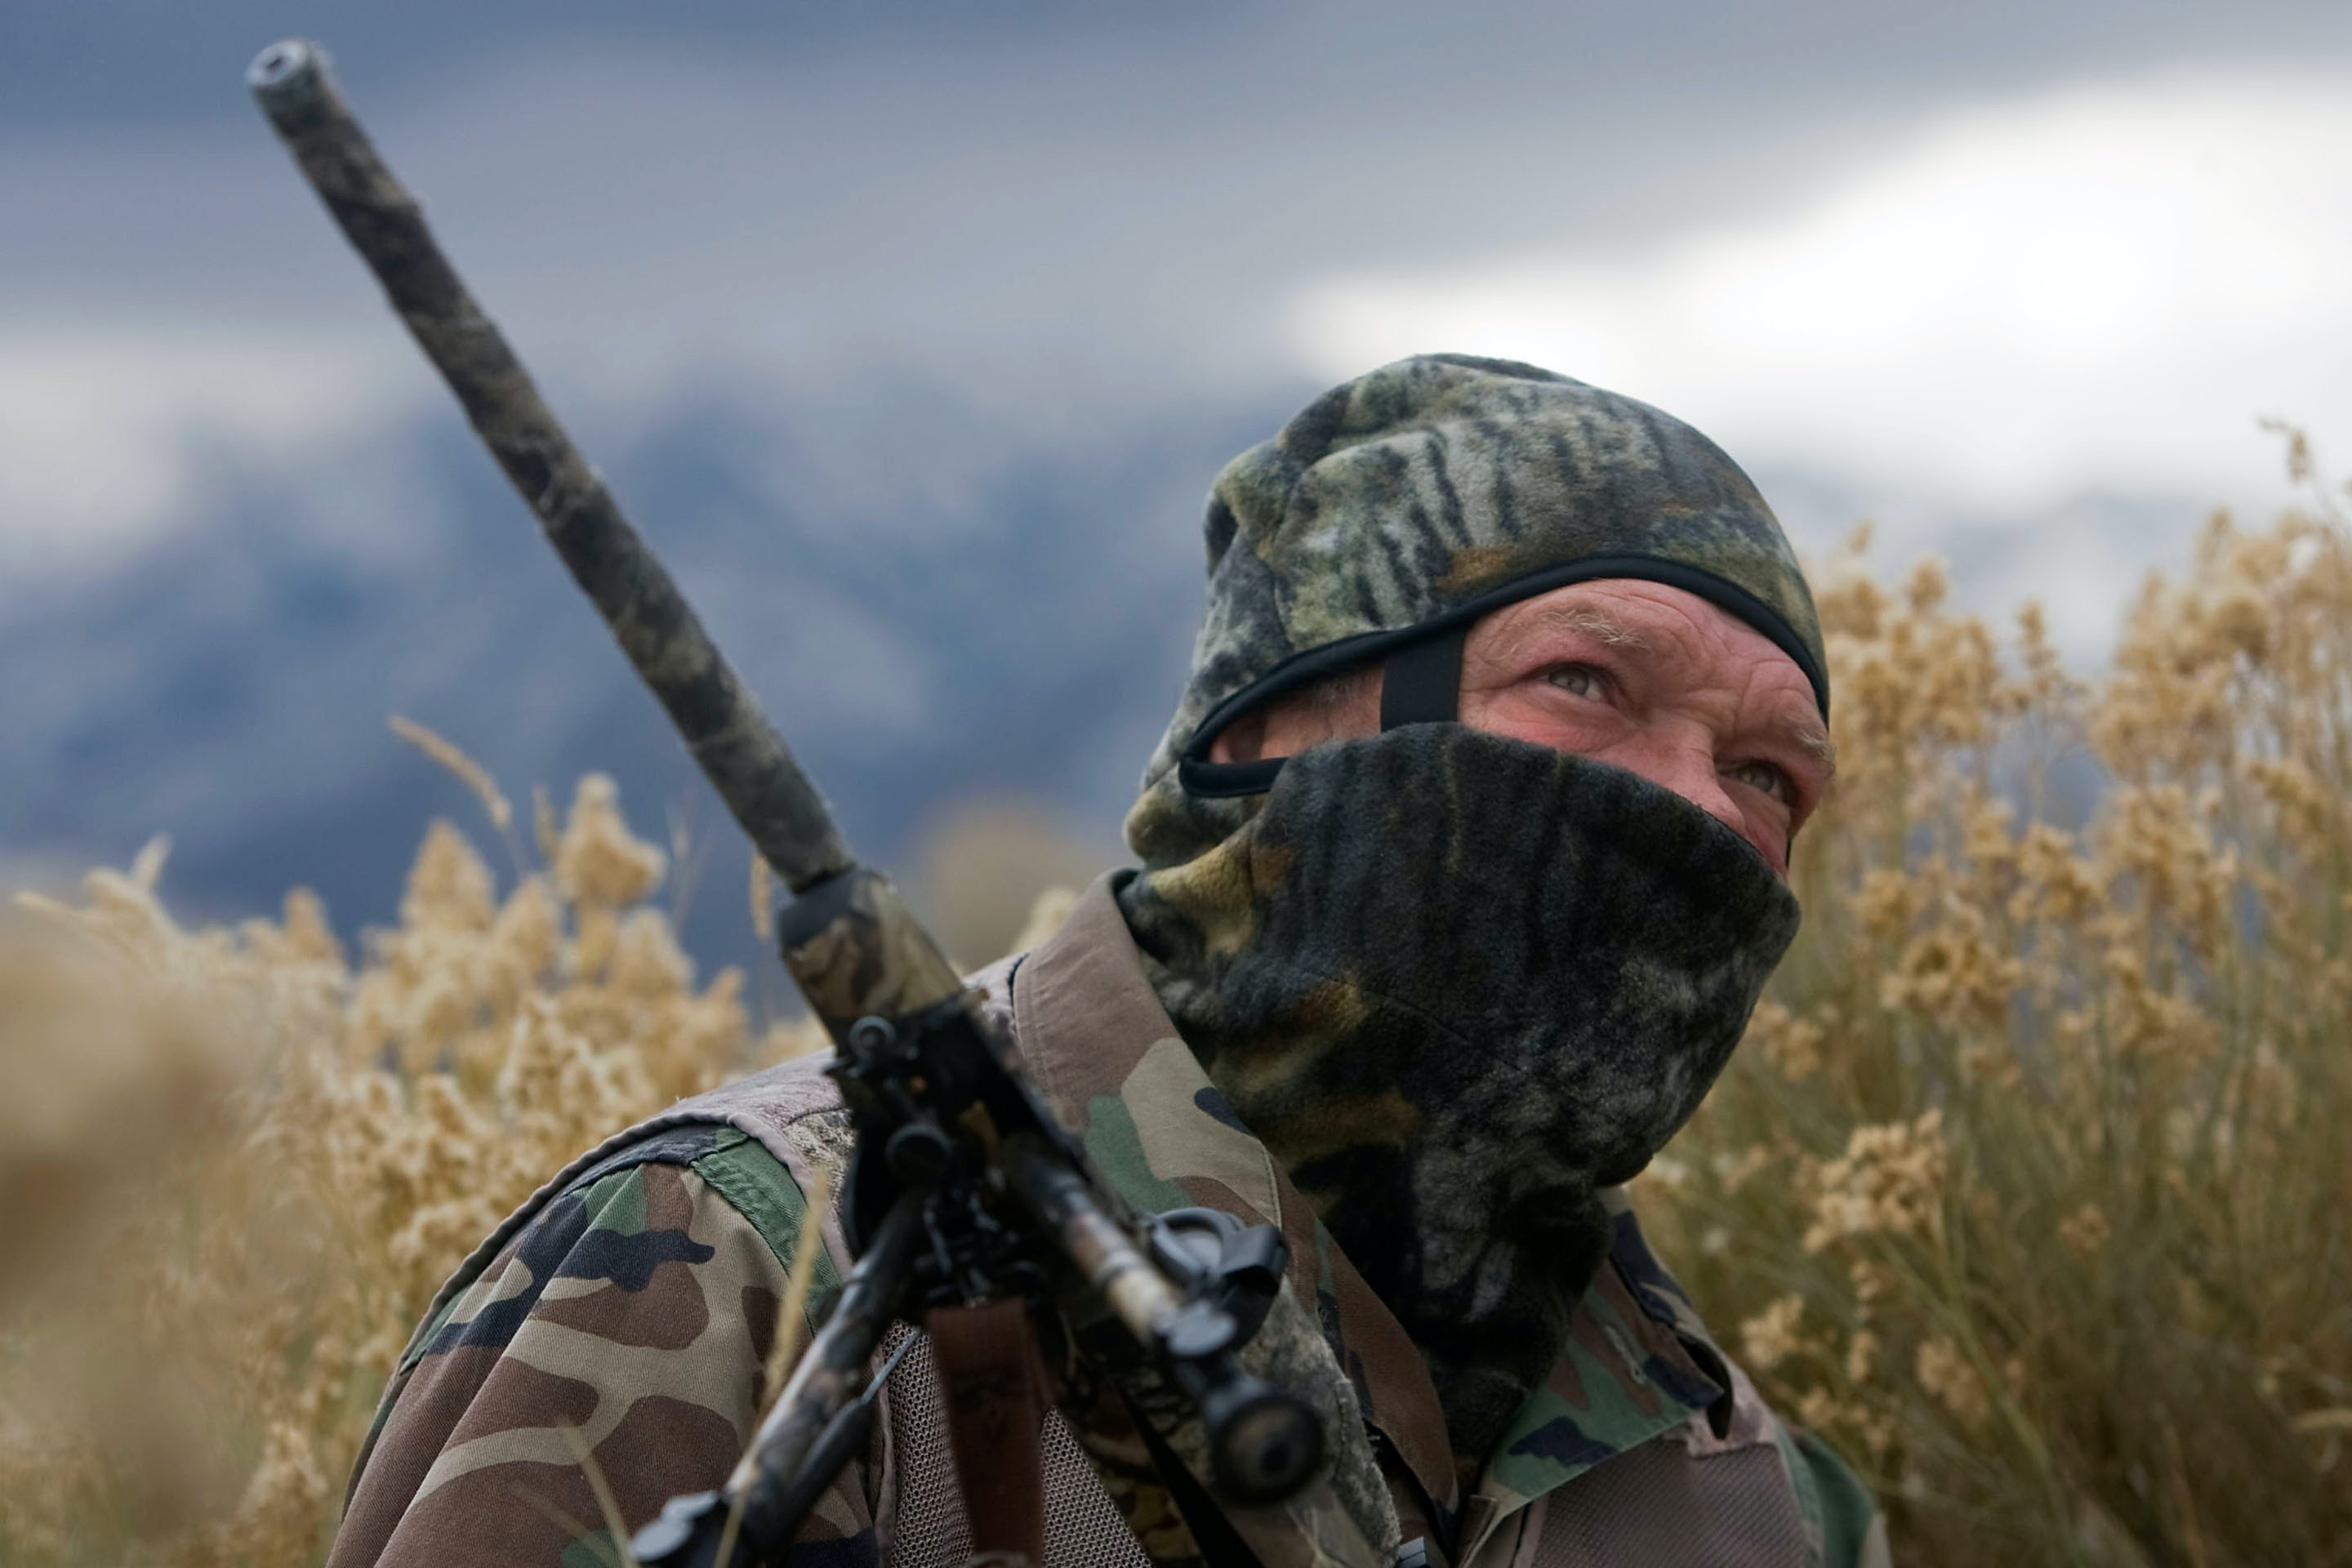 In this Nov. 30, 2011 photo, William Keebler appears in camouflage in Vernon, Utah. Keebler, a Utah militia group leader with ties to Nevada rancher Cliven Bundy,  has been arrested and charged with attempting to blow up a rural, federally-owned cabin in Arizona, federal authorities said Thursday, June 23, 2016. (Al Hartmann /The Salt Lake Tribune via AP)